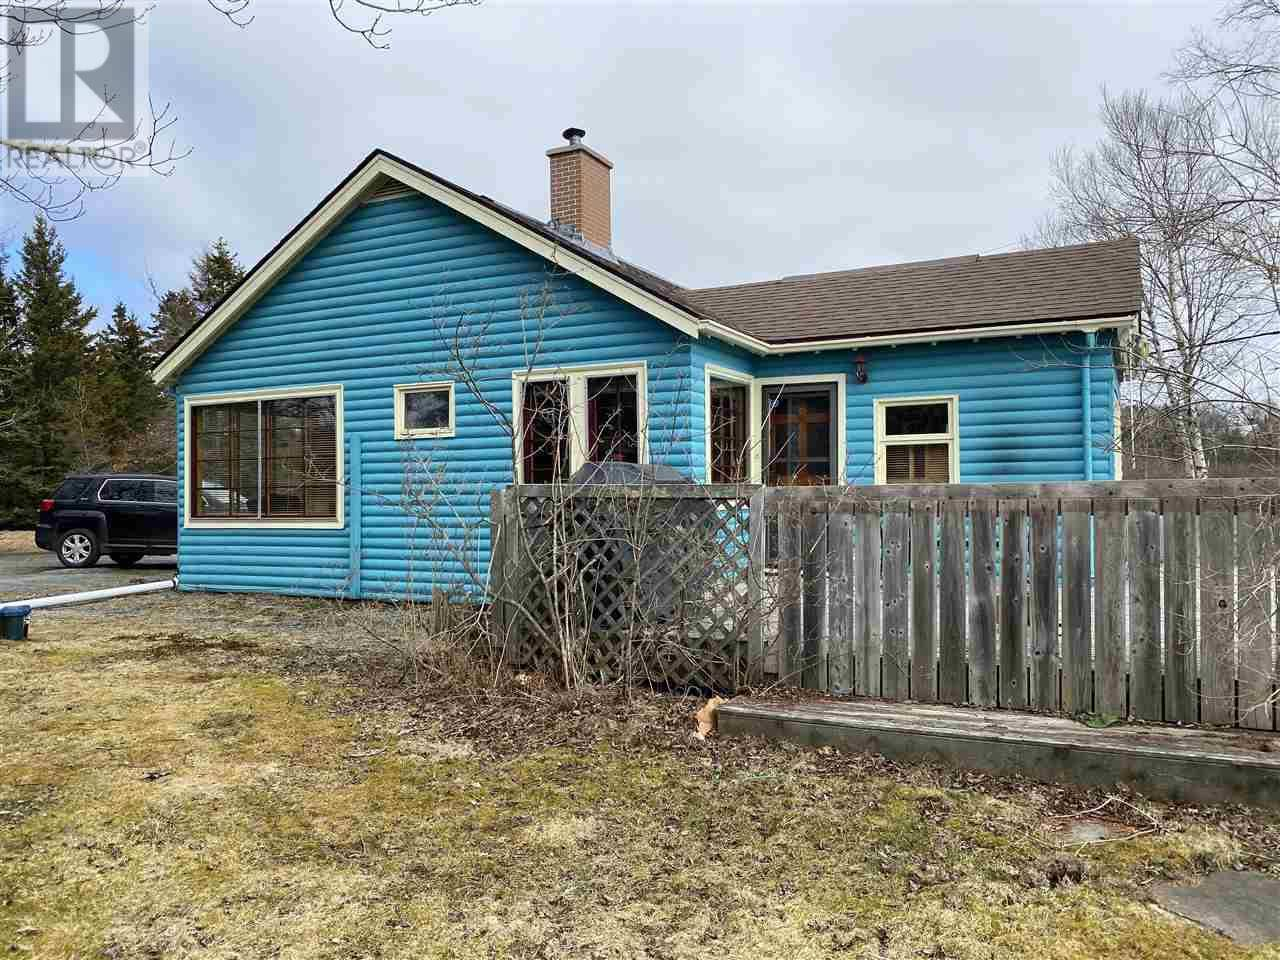 House for sale at 81 Petpeswick Rd West Musquodoboit Harbour Nova Scotia - MLS: 202005738